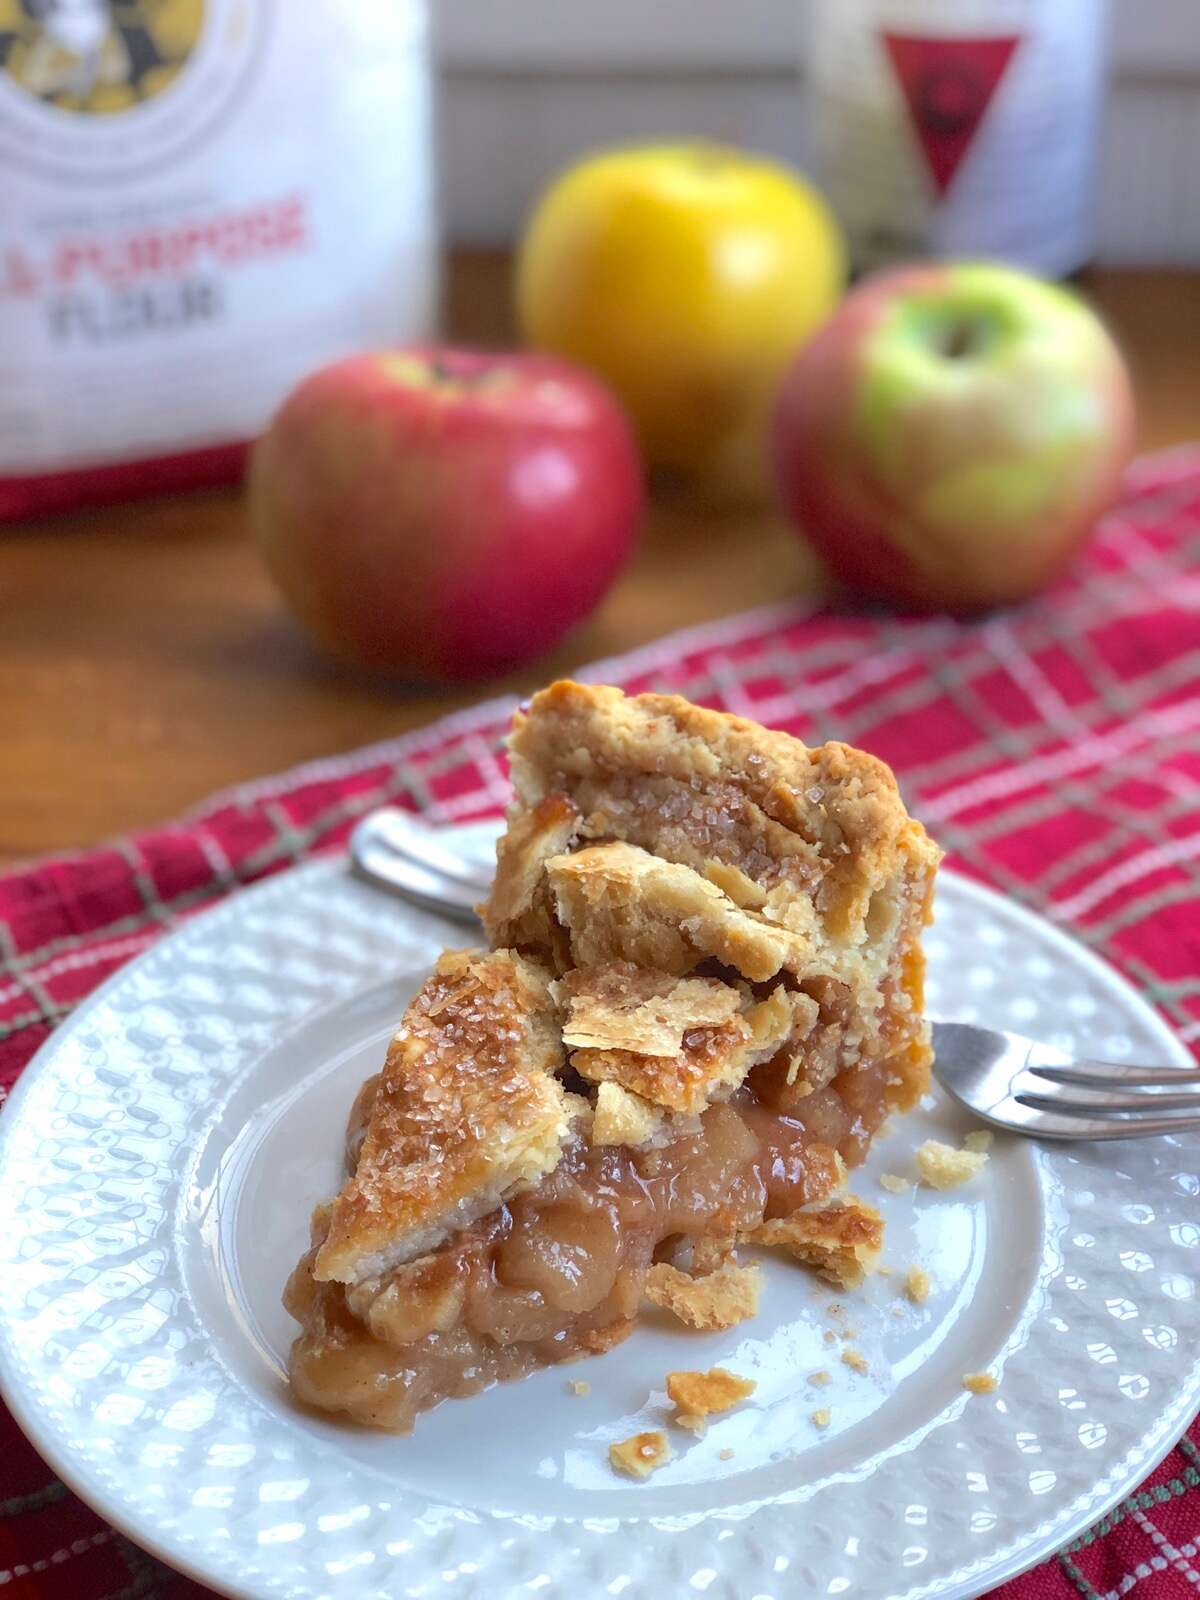 Slice of apple pie on a plate, apples in the background.